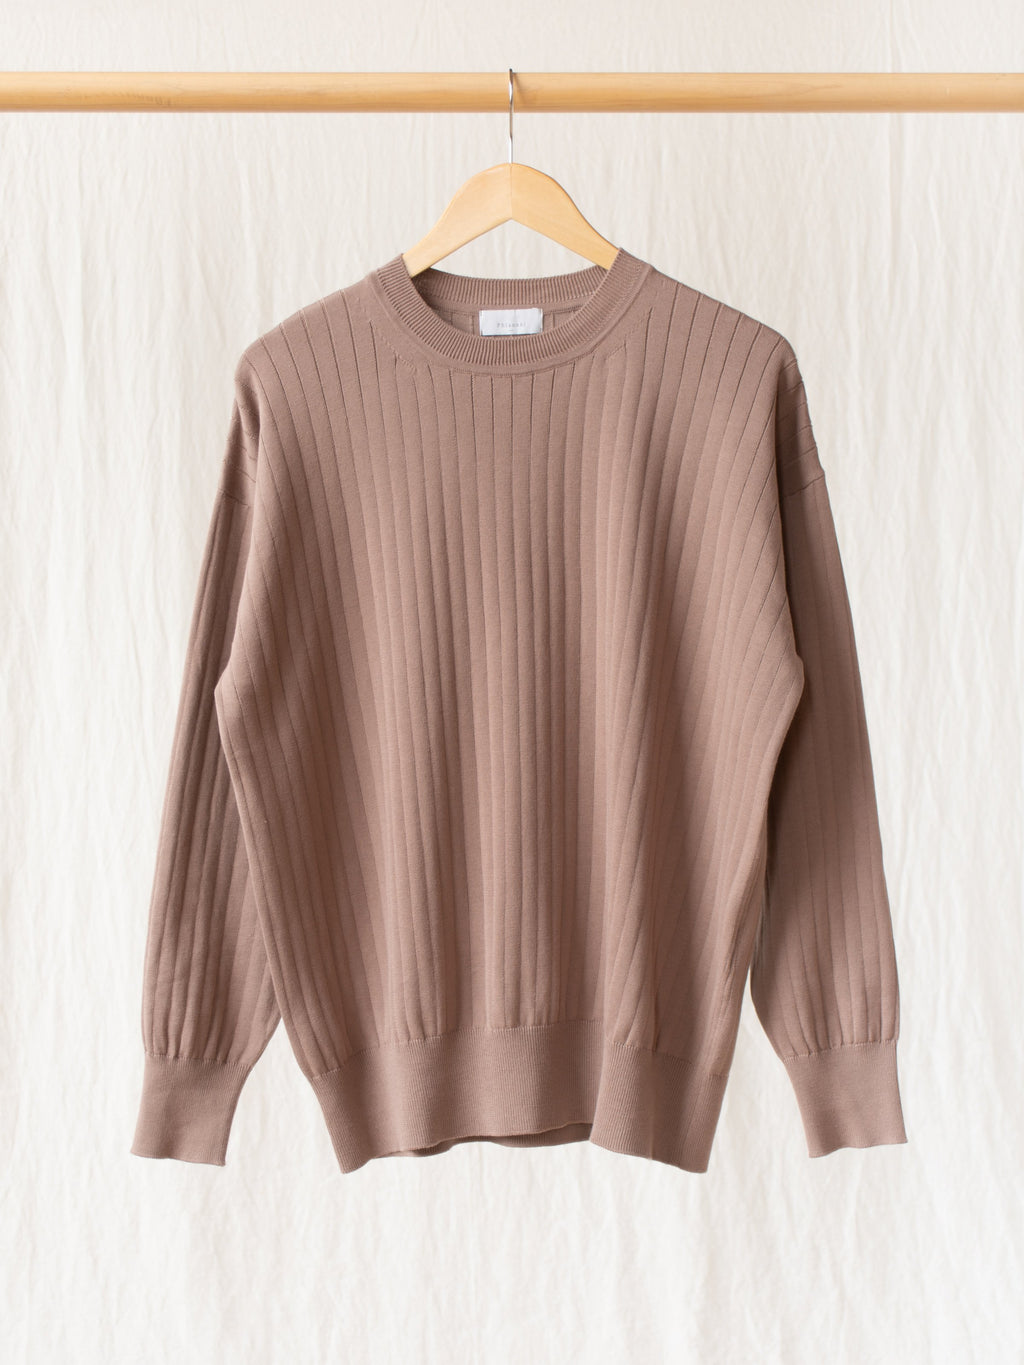 Namu Shop - Phlannel Suvin Cotton Wide Rib Knit - Brown